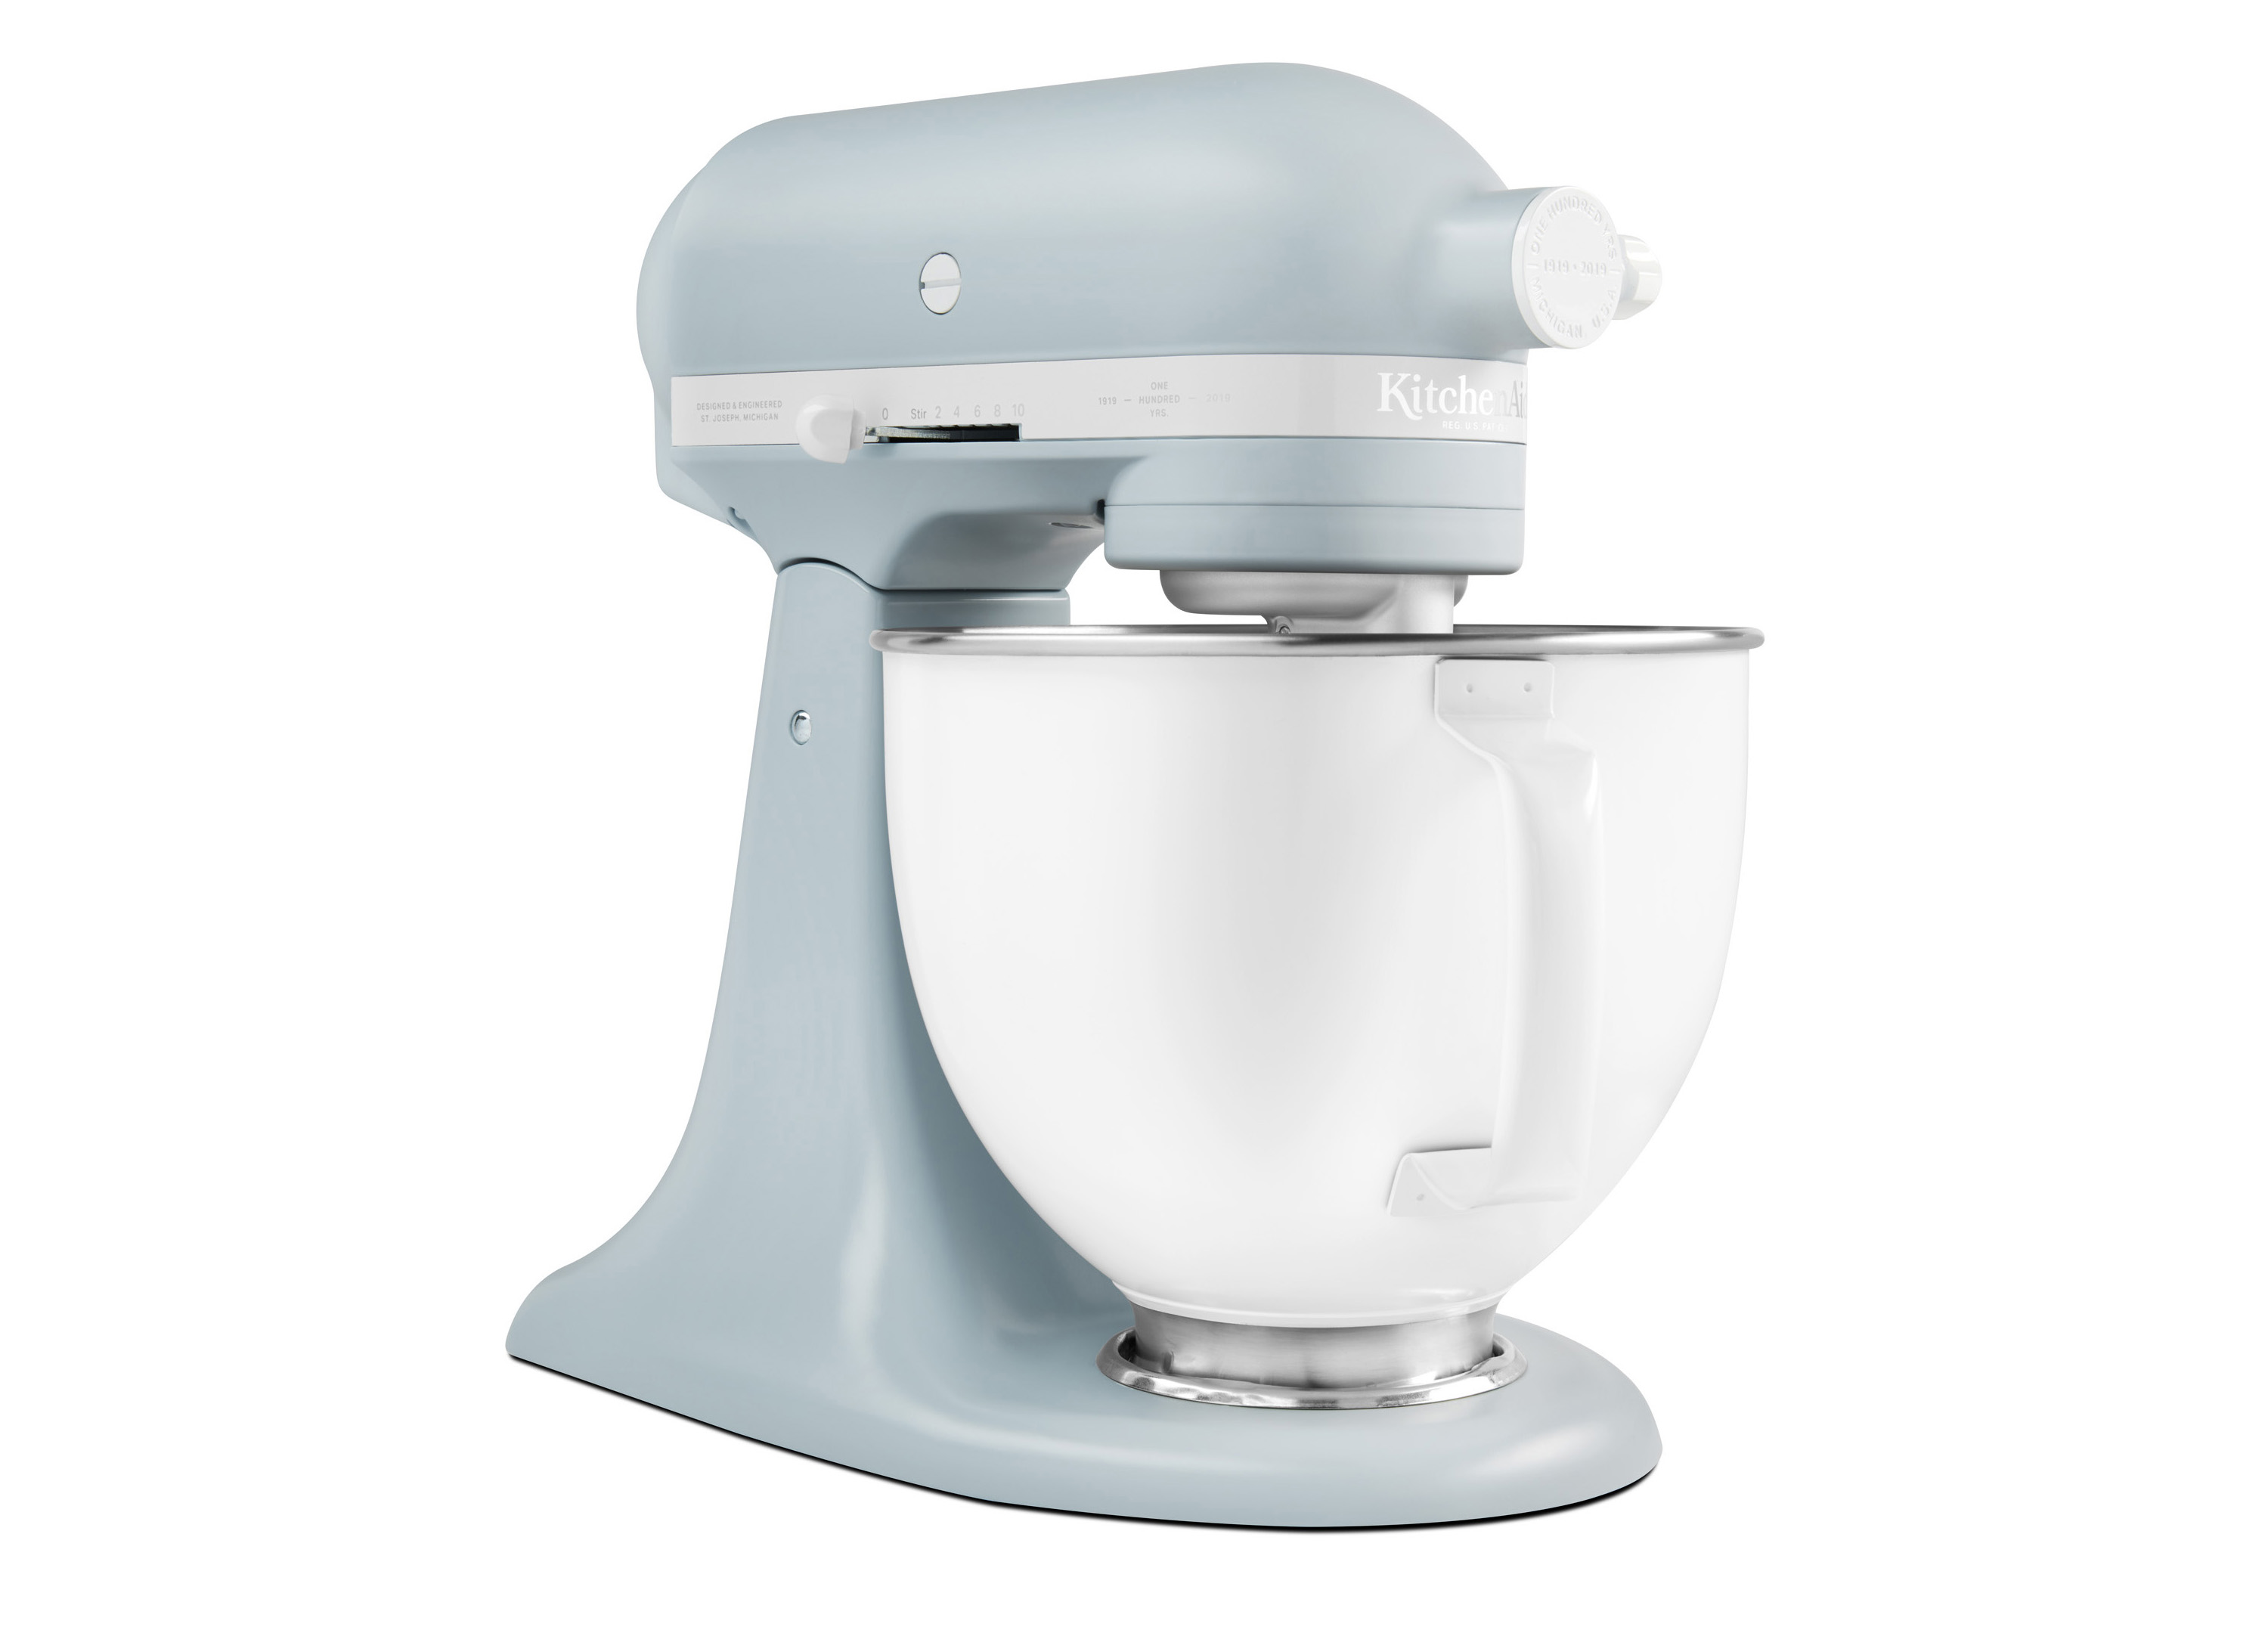 Kitchenaid S Special Edition Stand Mixer Has Major Vintage